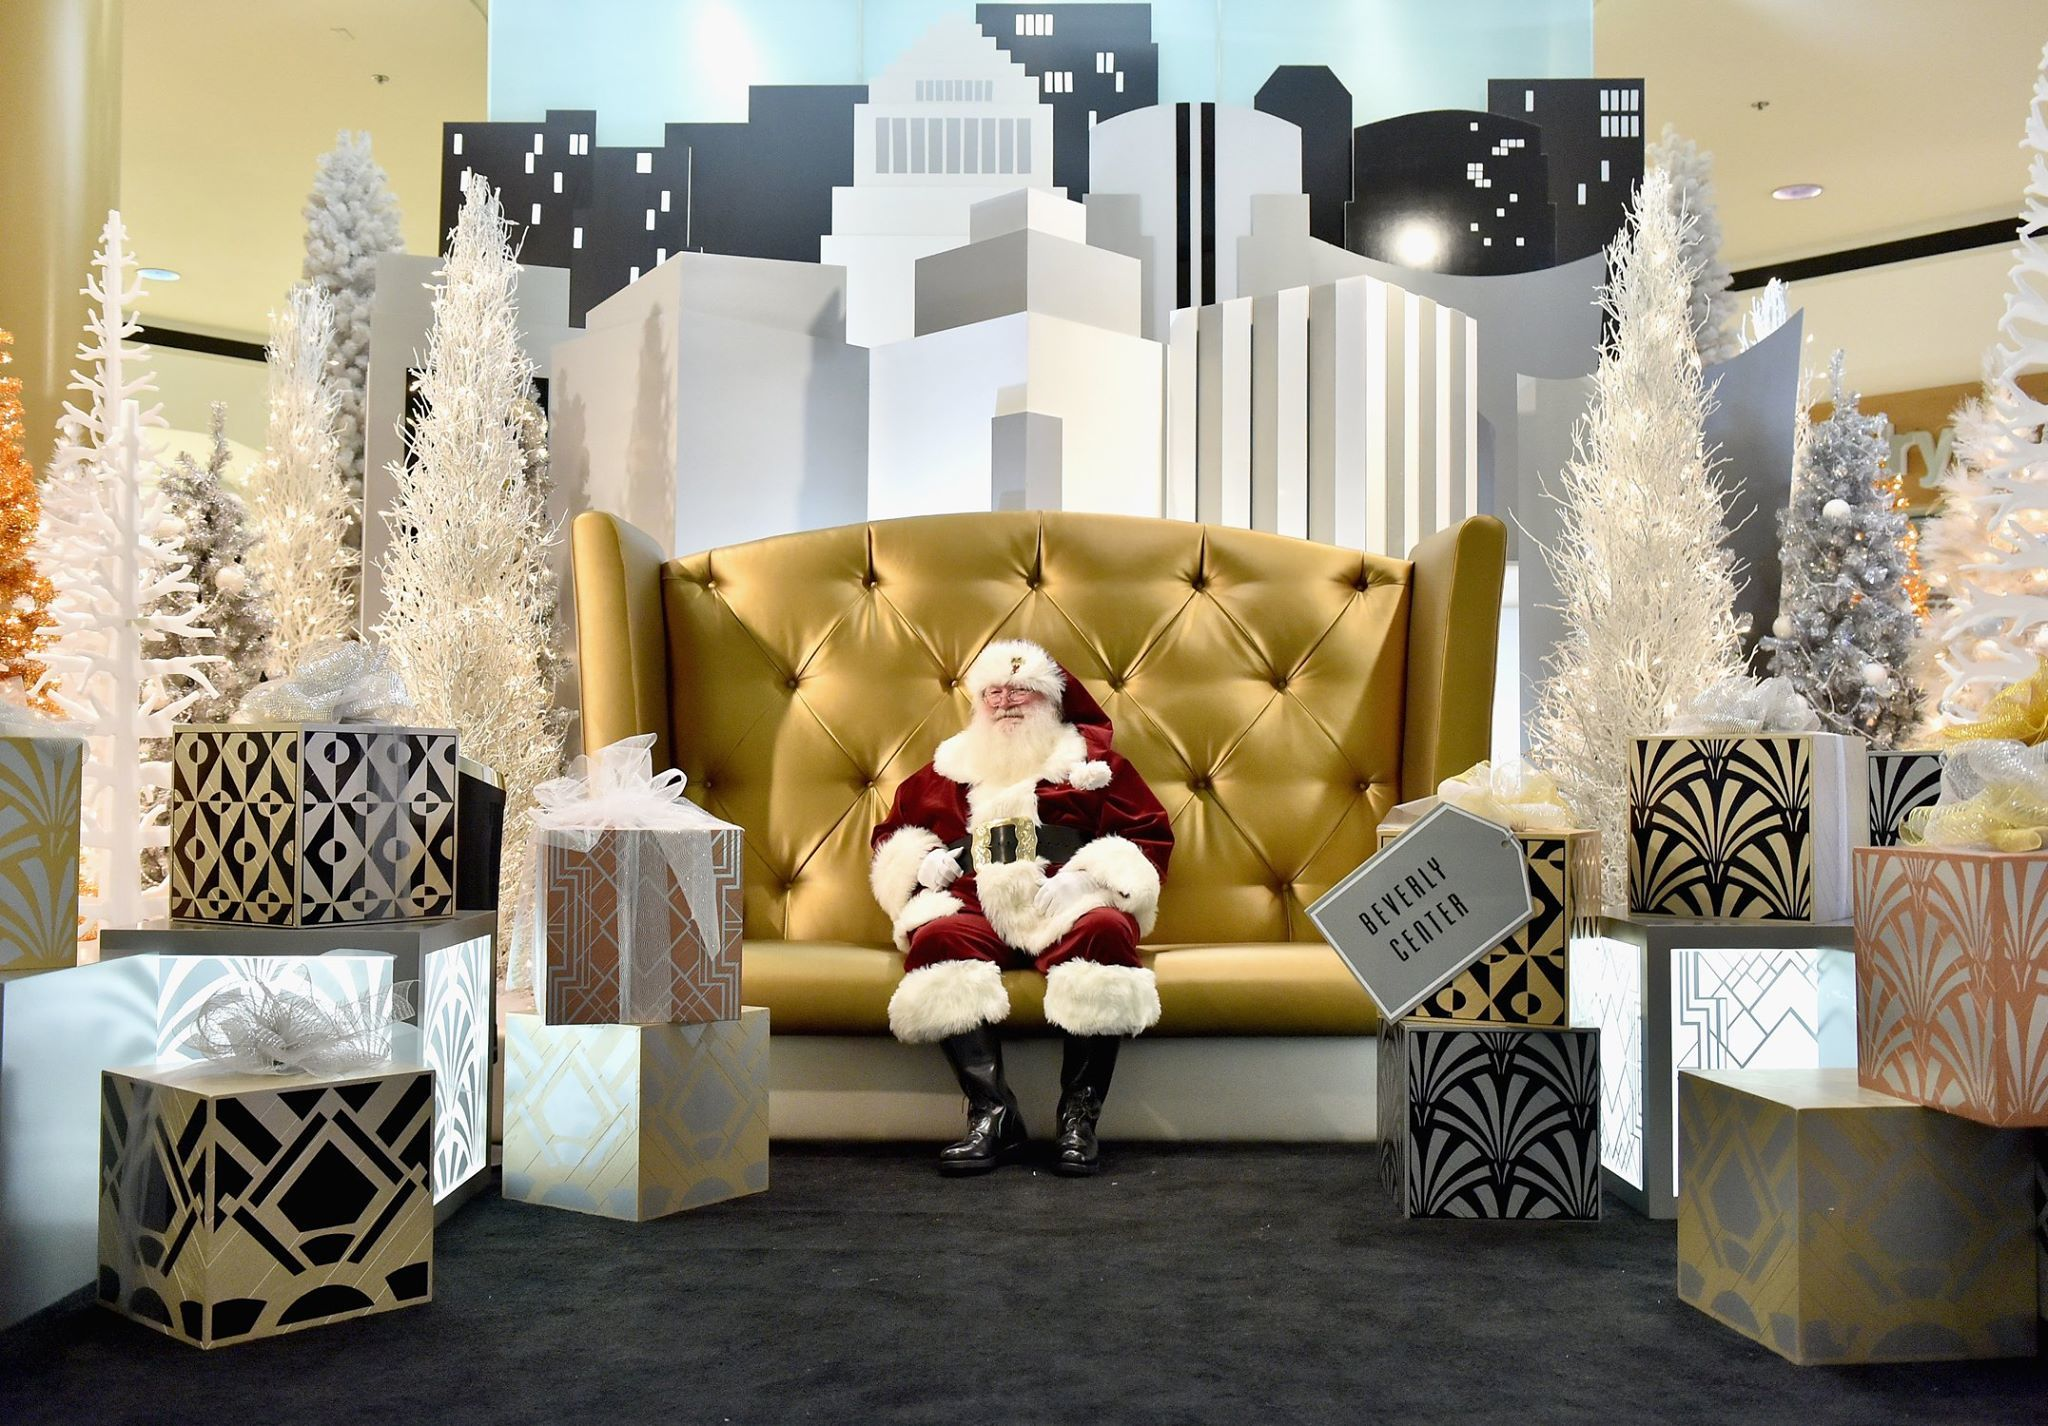 Where to go for pictures with Santa in Los Angeles